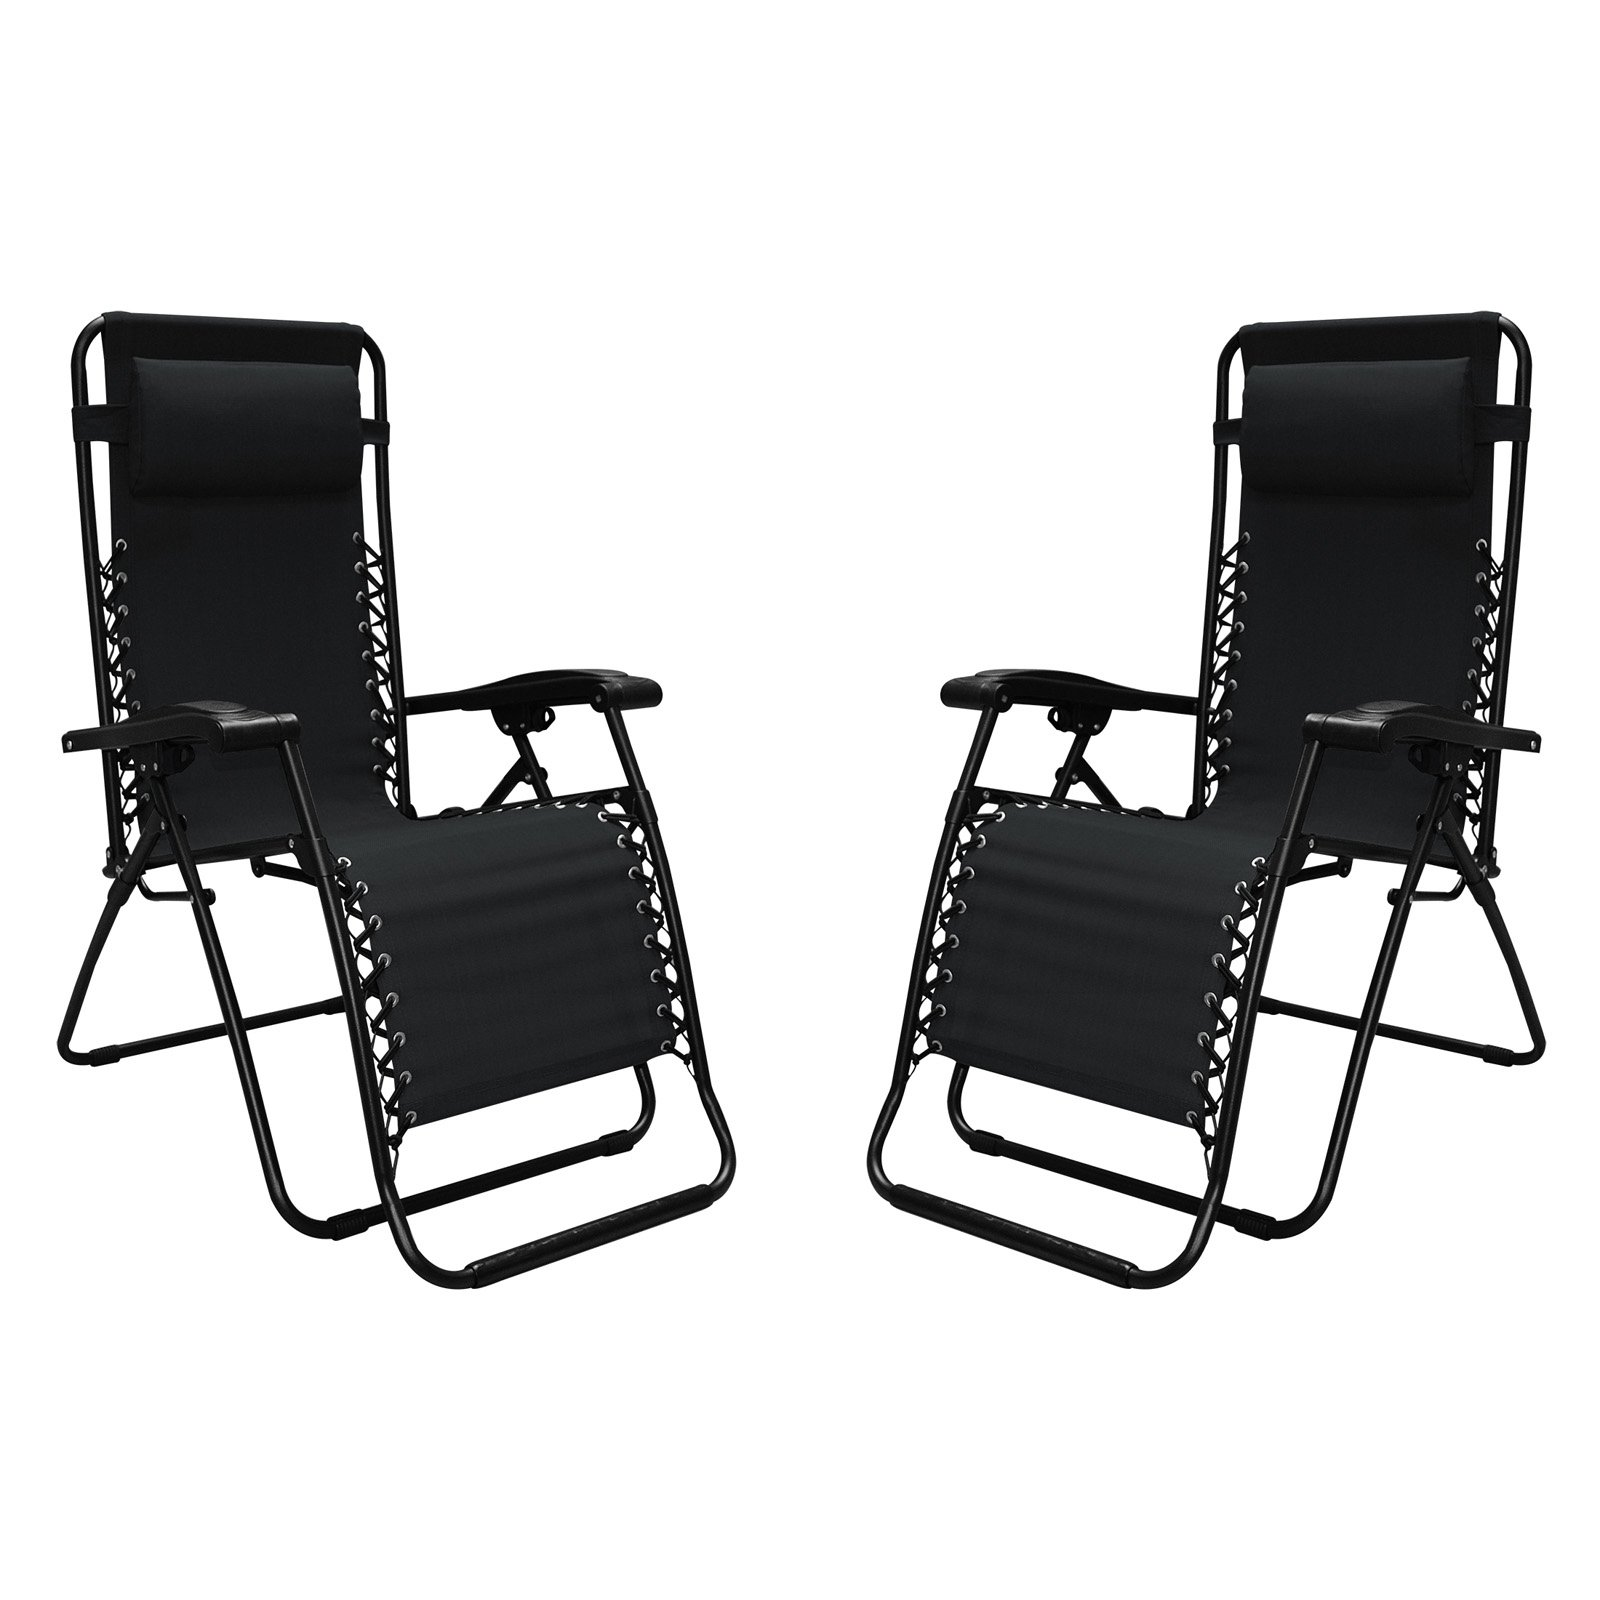 Caravan Sport Infinity Zero Gravity Lounge Chair - Set of 2